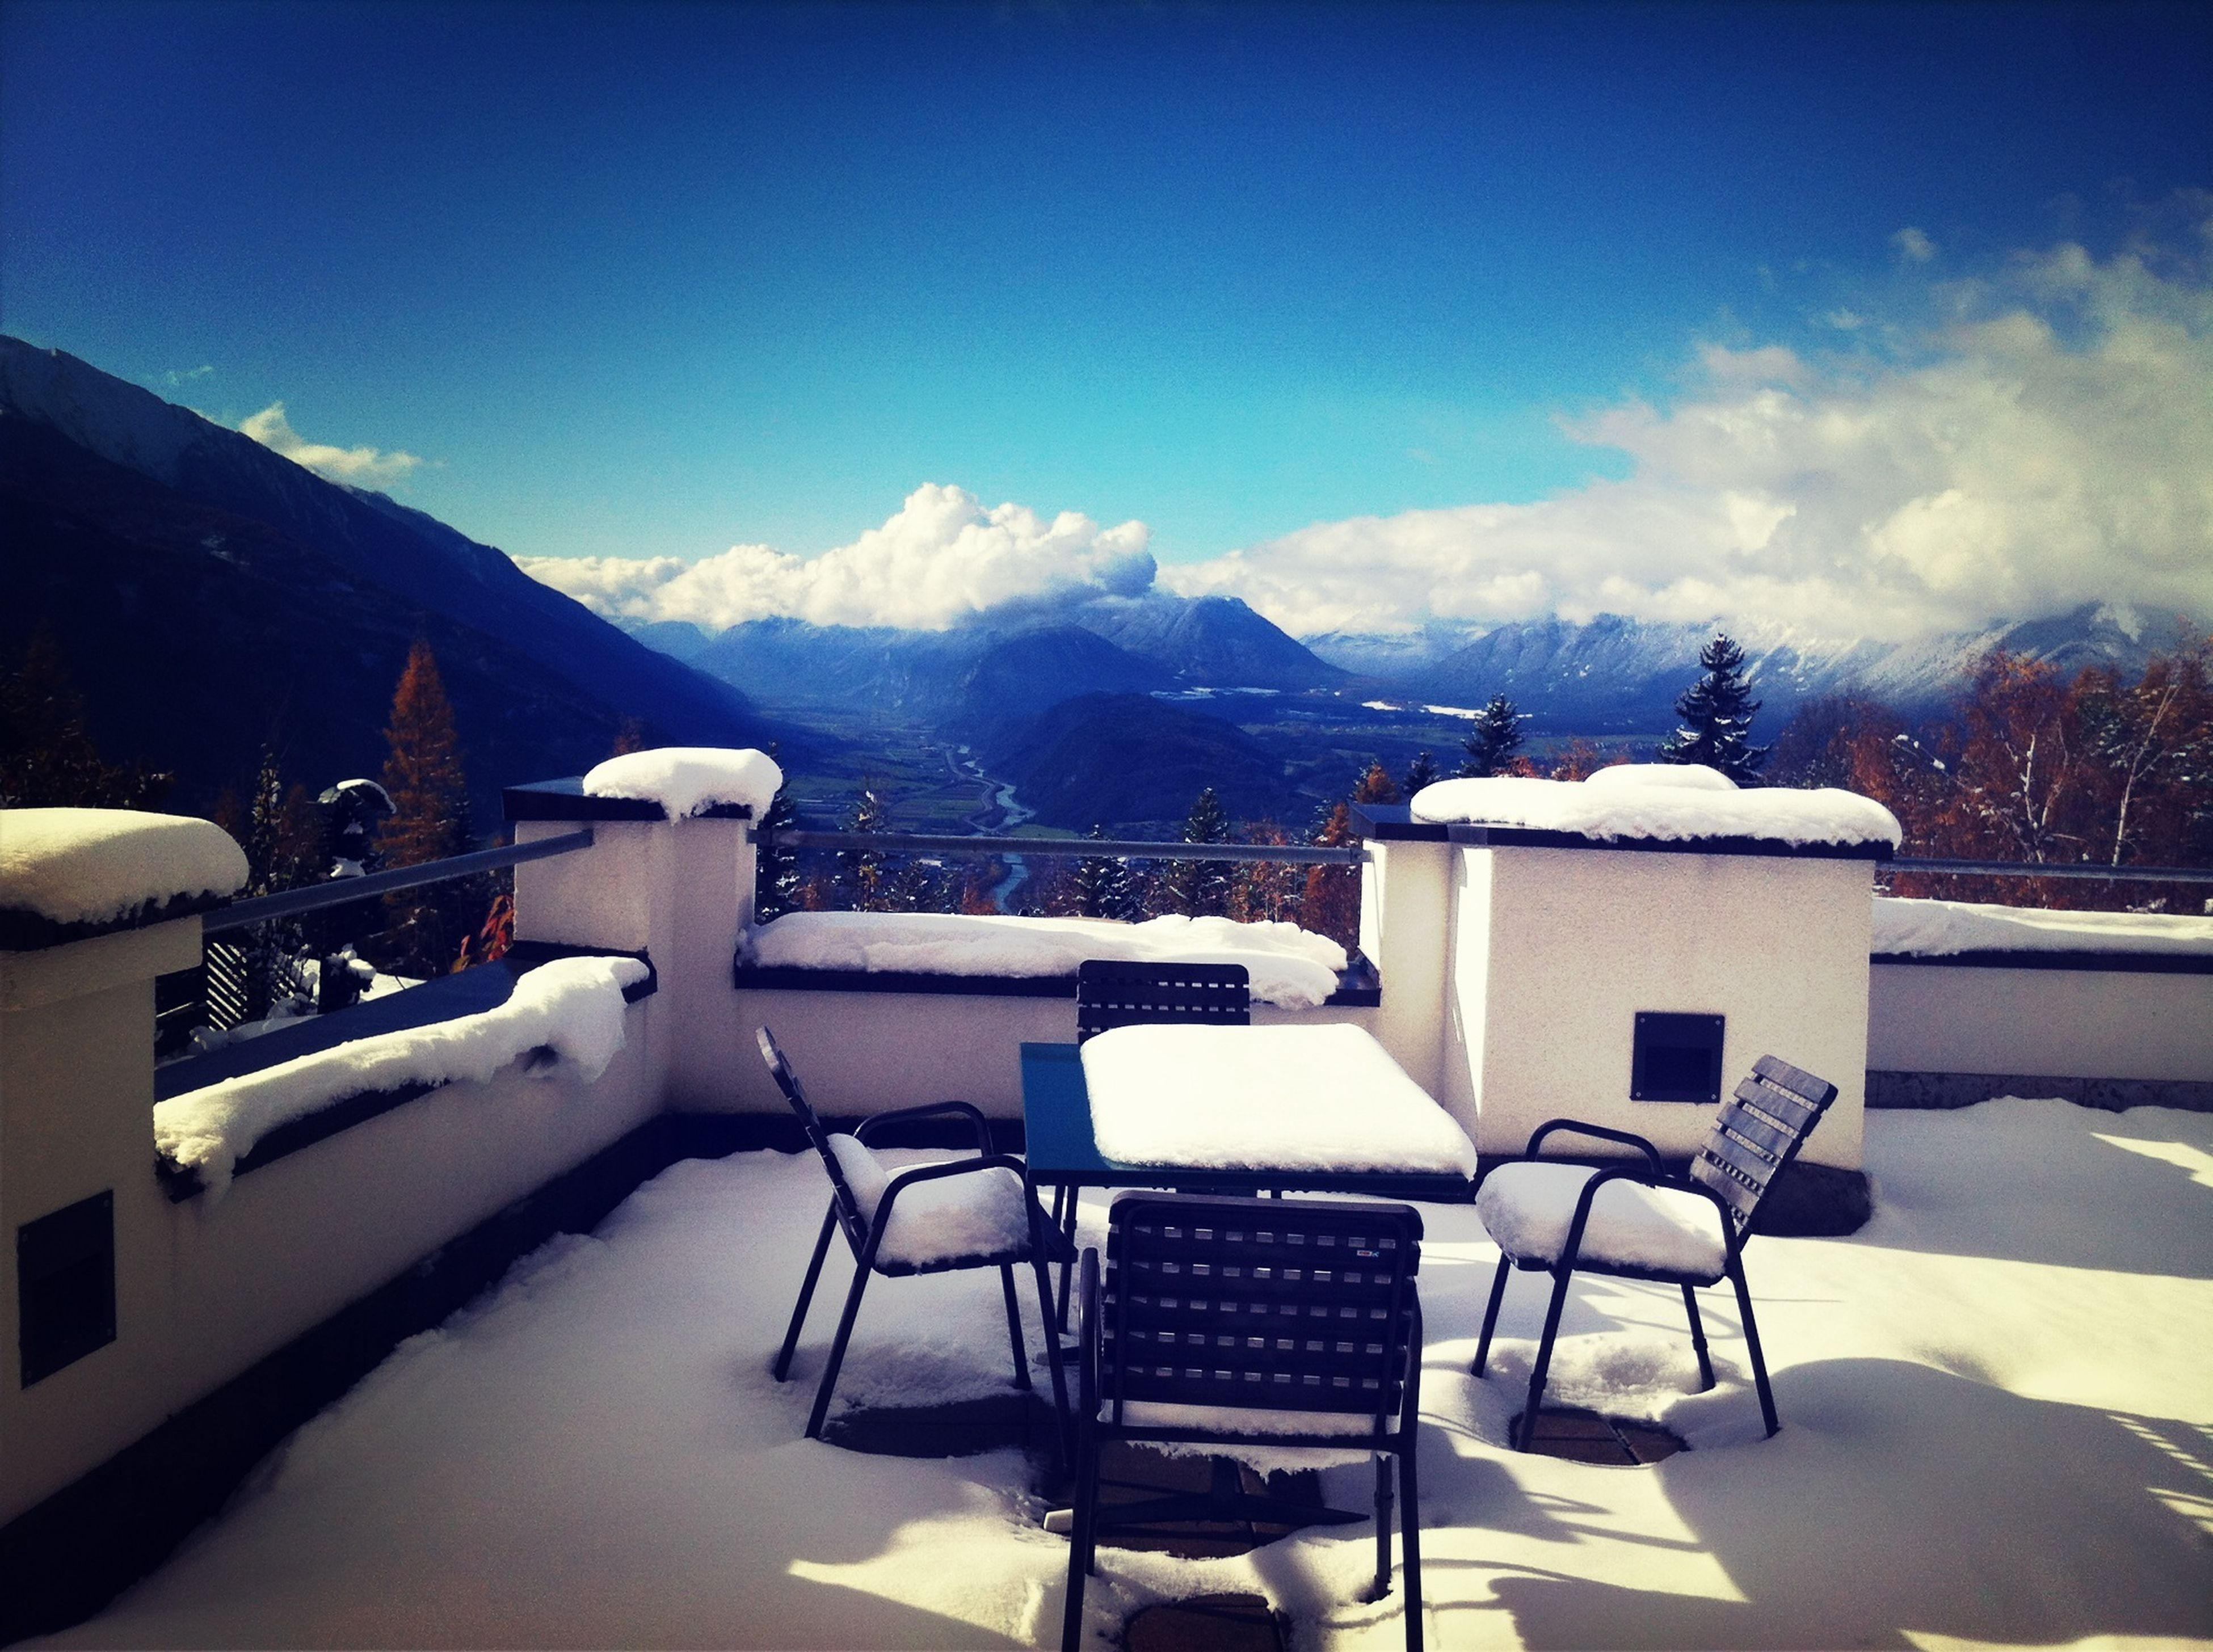 mountain, mountain range, sky, chair, building exterior, snow, architecture, built structure, table, tranquility, nature, empty, tranquil scene, absence, house, winter, cold temperature, scenics, landscape, beauty in nature